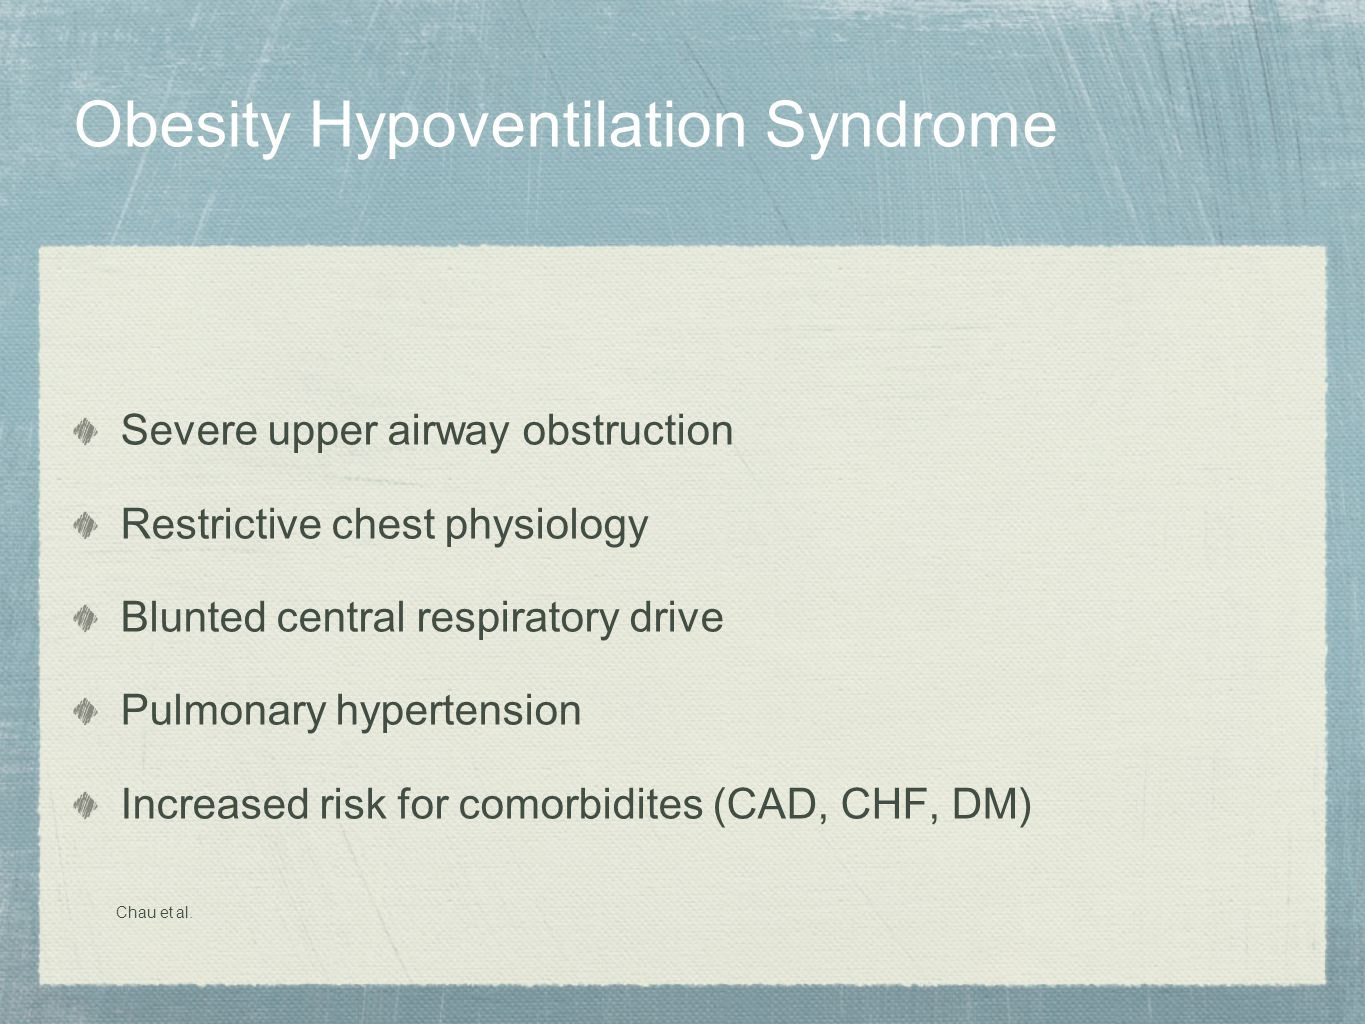 Obesity Hypoventilation Syndrome Severe upper airway obstruction Restrictive chest physiology Blunted central respiratory drive Pulmonary hypertension